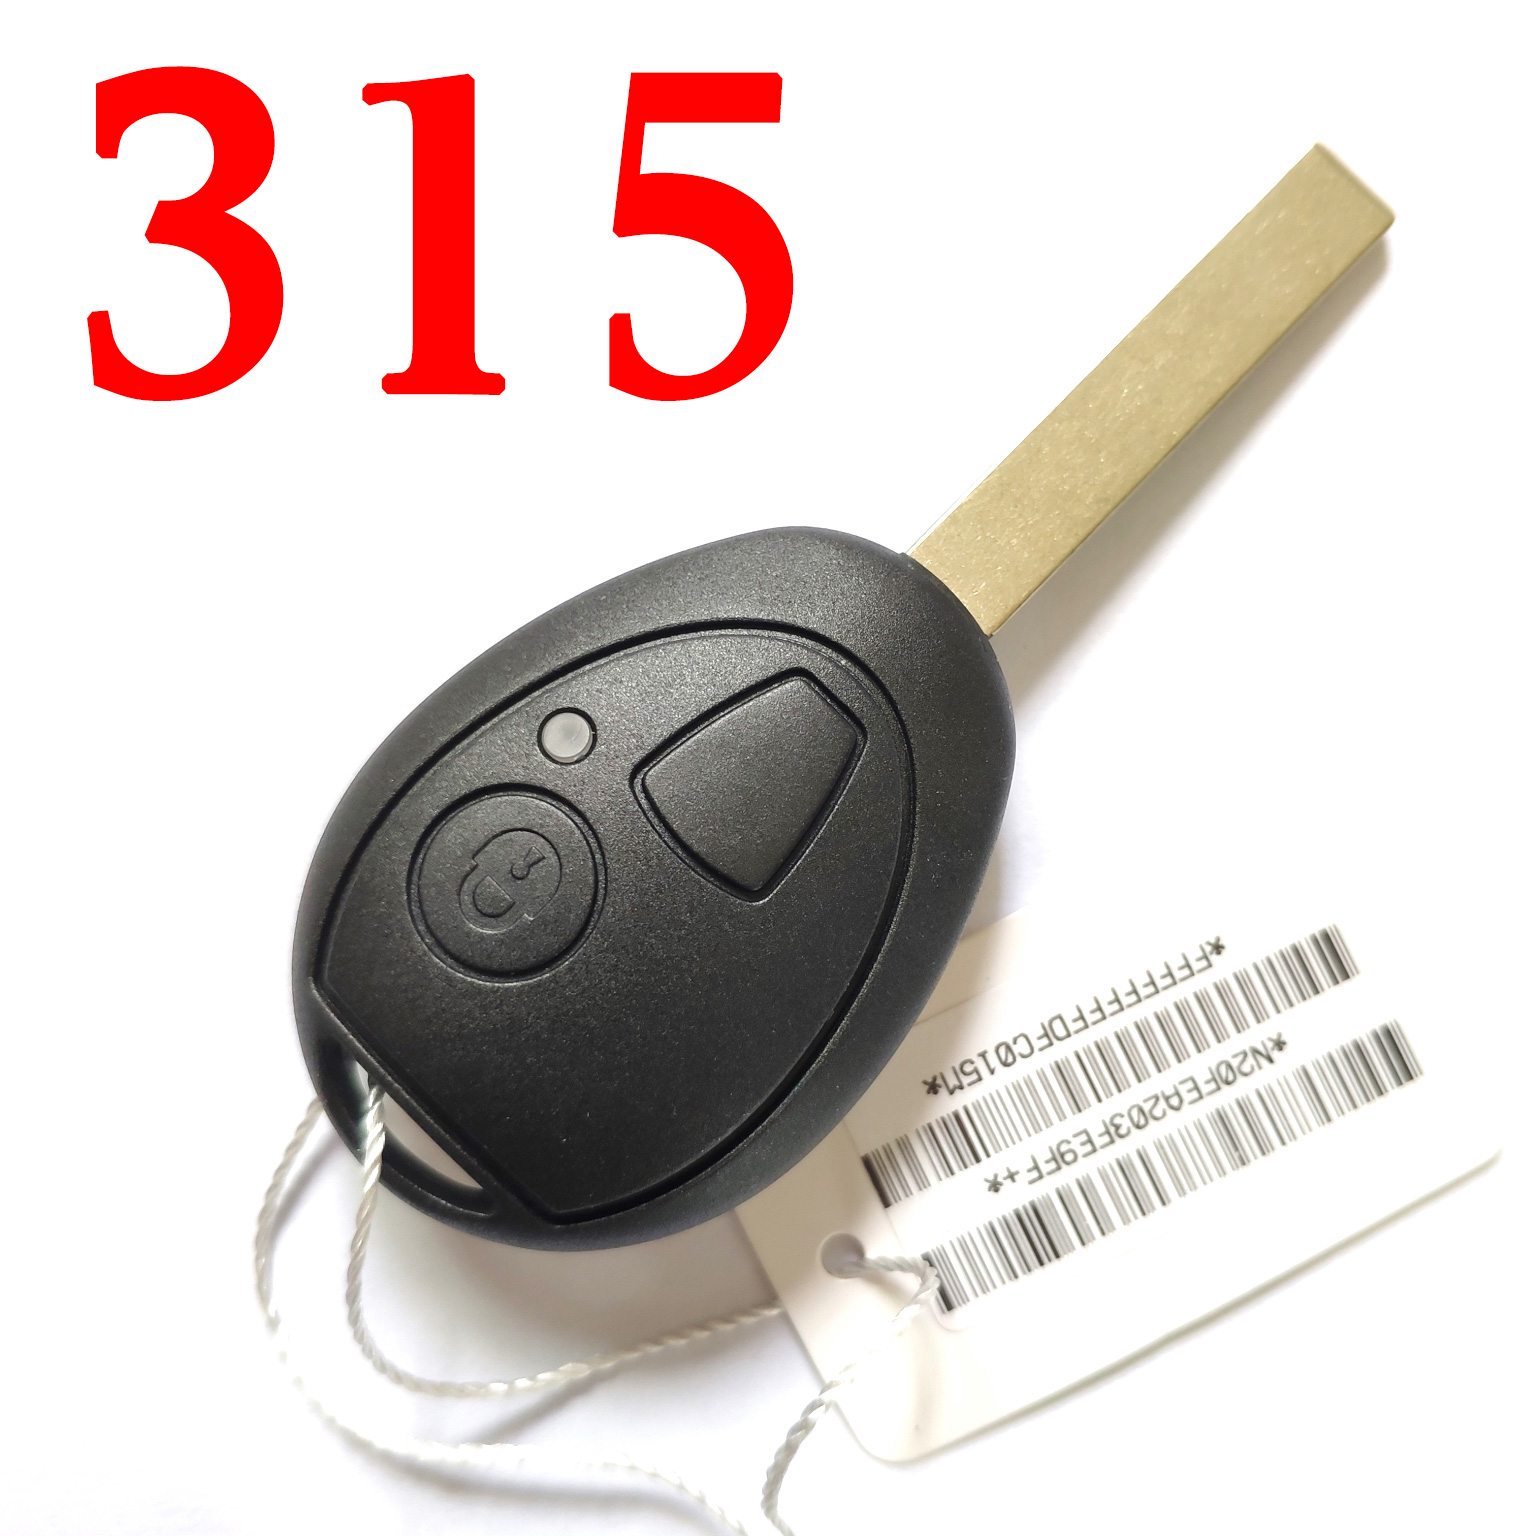 2 Buttons 315 MHz Remote key for BMW